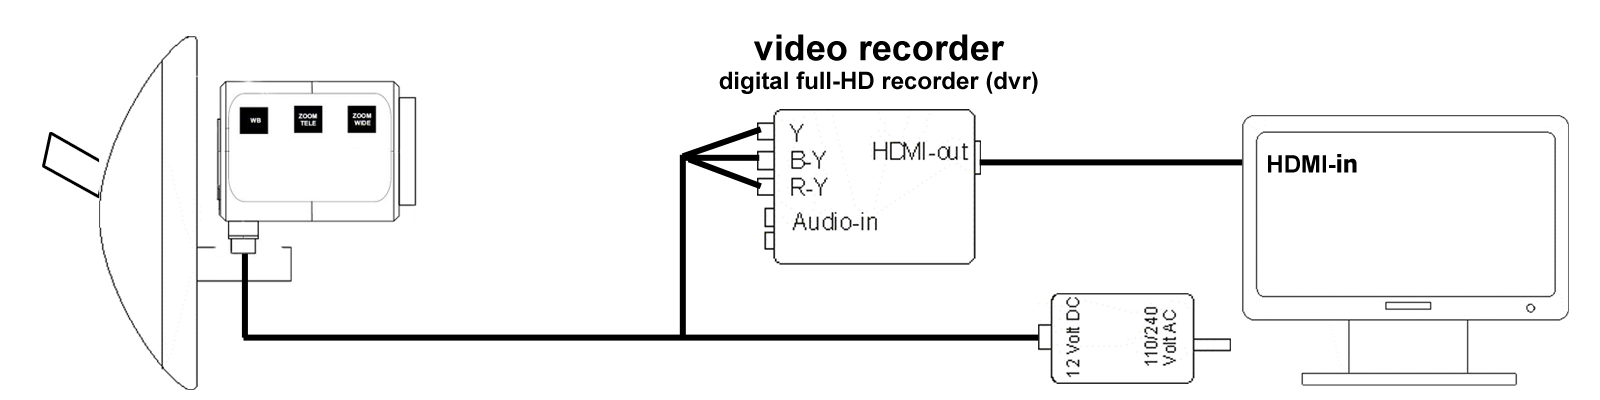 diagram thirdeye hd with digital video recorder